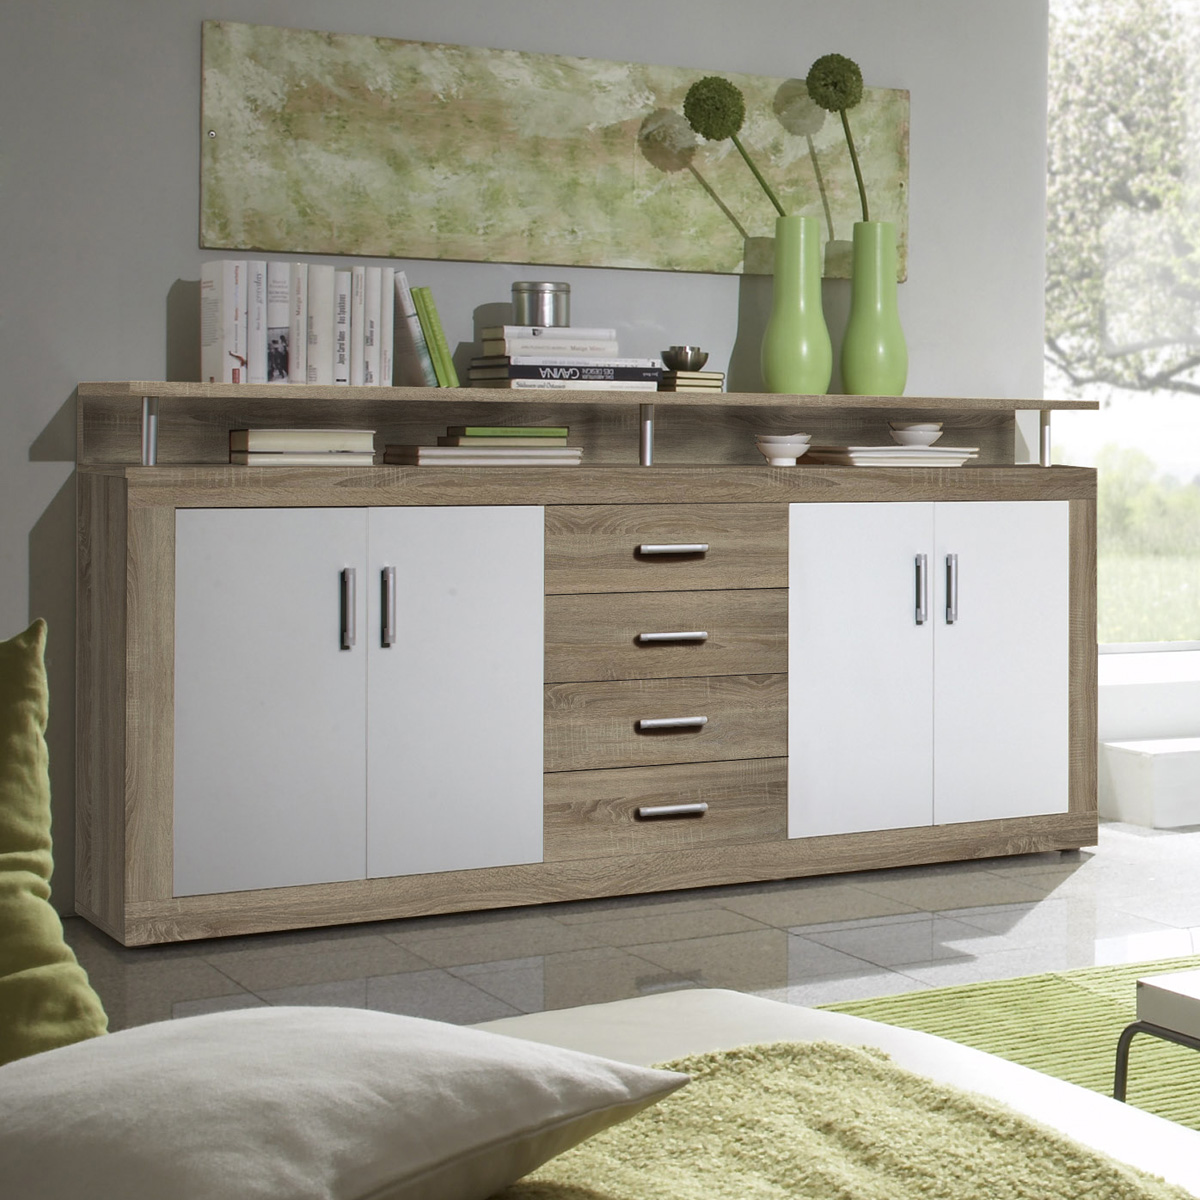 sideboard juno kommode sonoma eiche und wei 195 cm breit. Black Bedroom Furniture Sets. Home Design Ideas